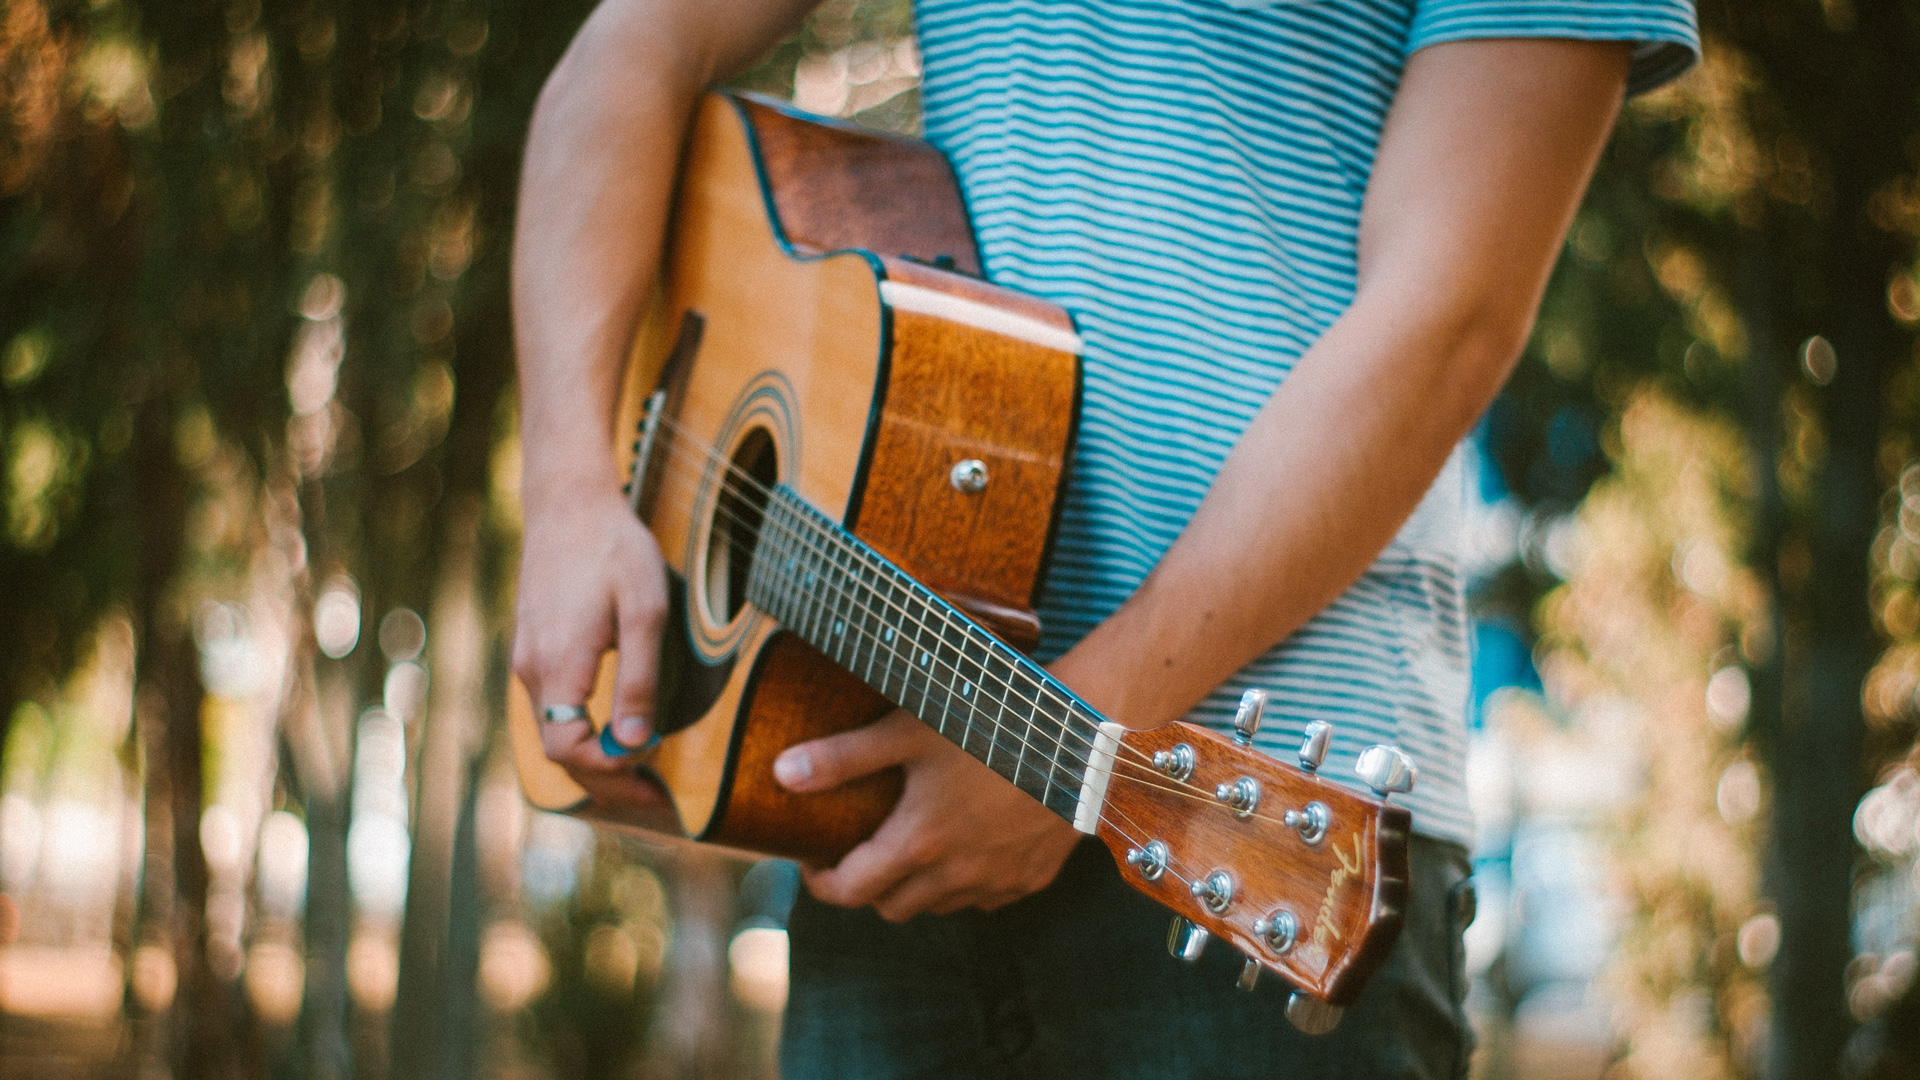 9 ways to improve yourself as a musician during Coronavirus lockdown - Learn a new instrument